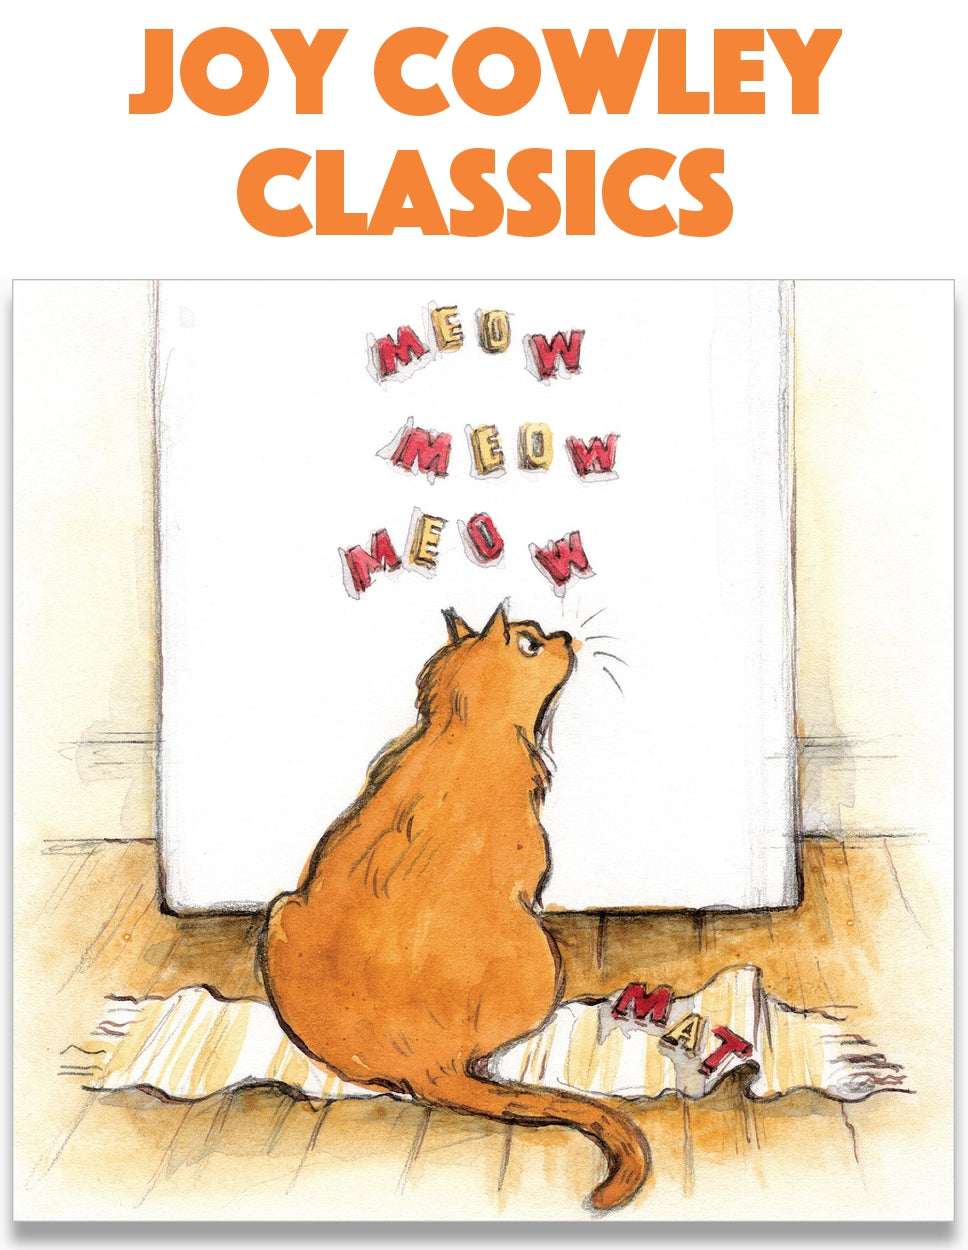 Joy Cowley Classics – Greedy Cat Stories